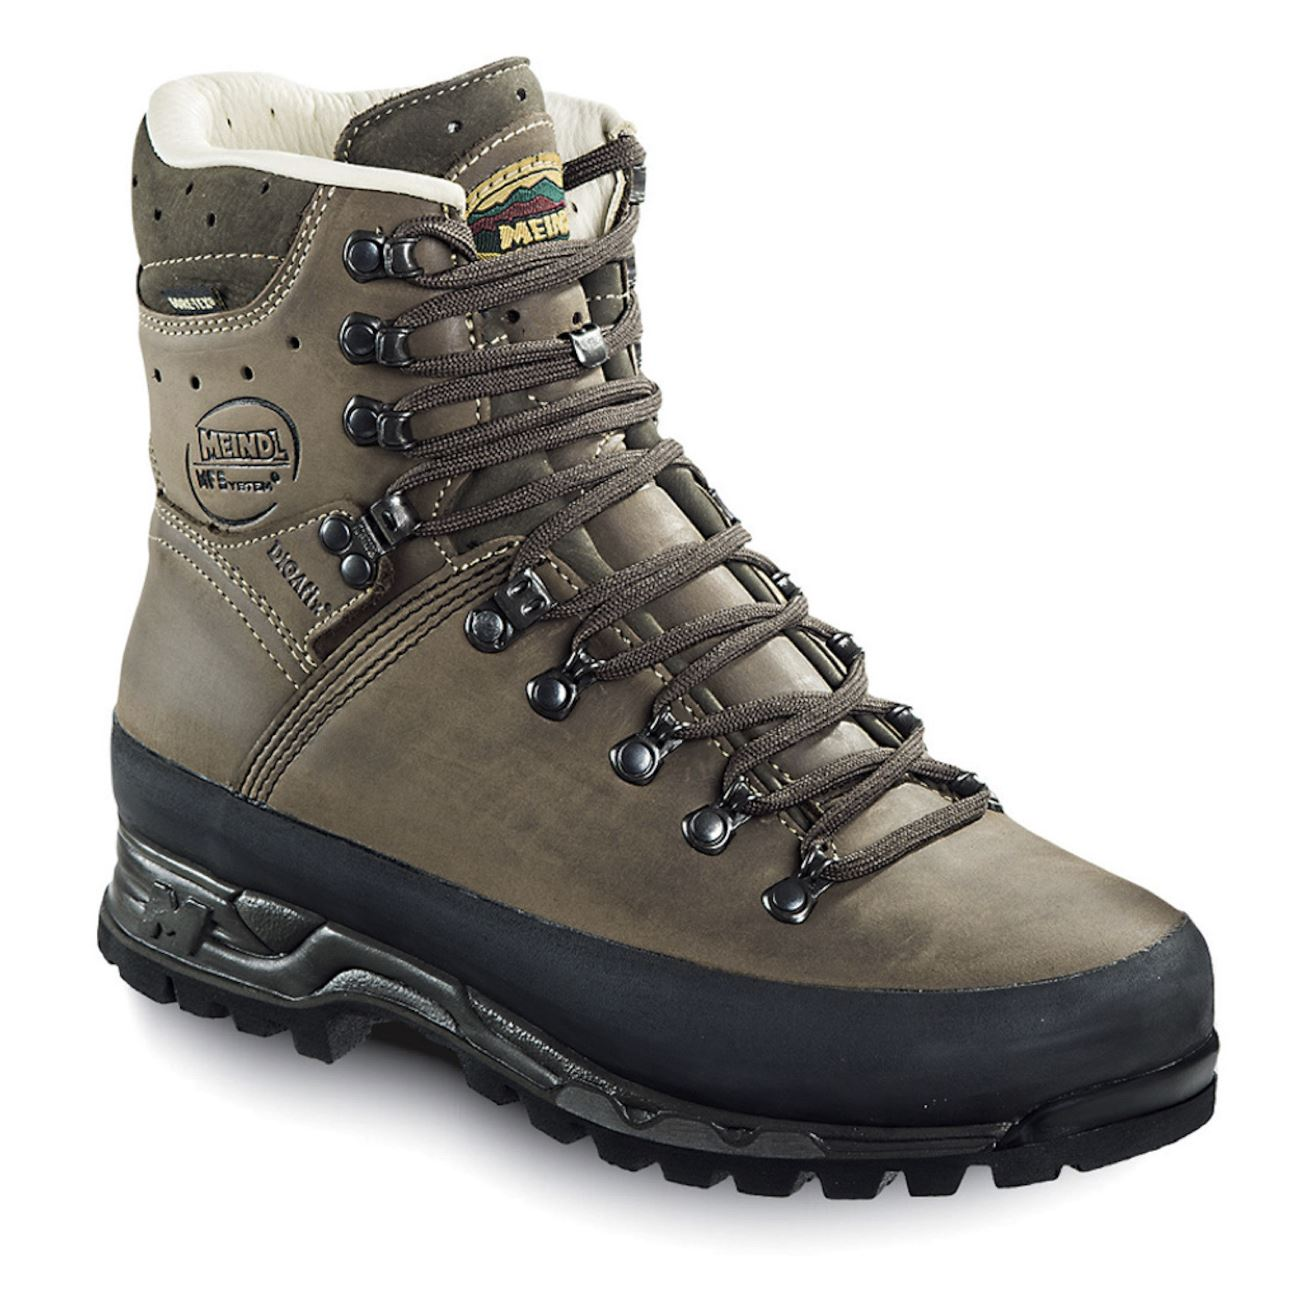 Meindl, Island MFS Active, Medium Fit, Nubuck Leather / Gortex, Brown Hiking Boots Meindl Brown 9